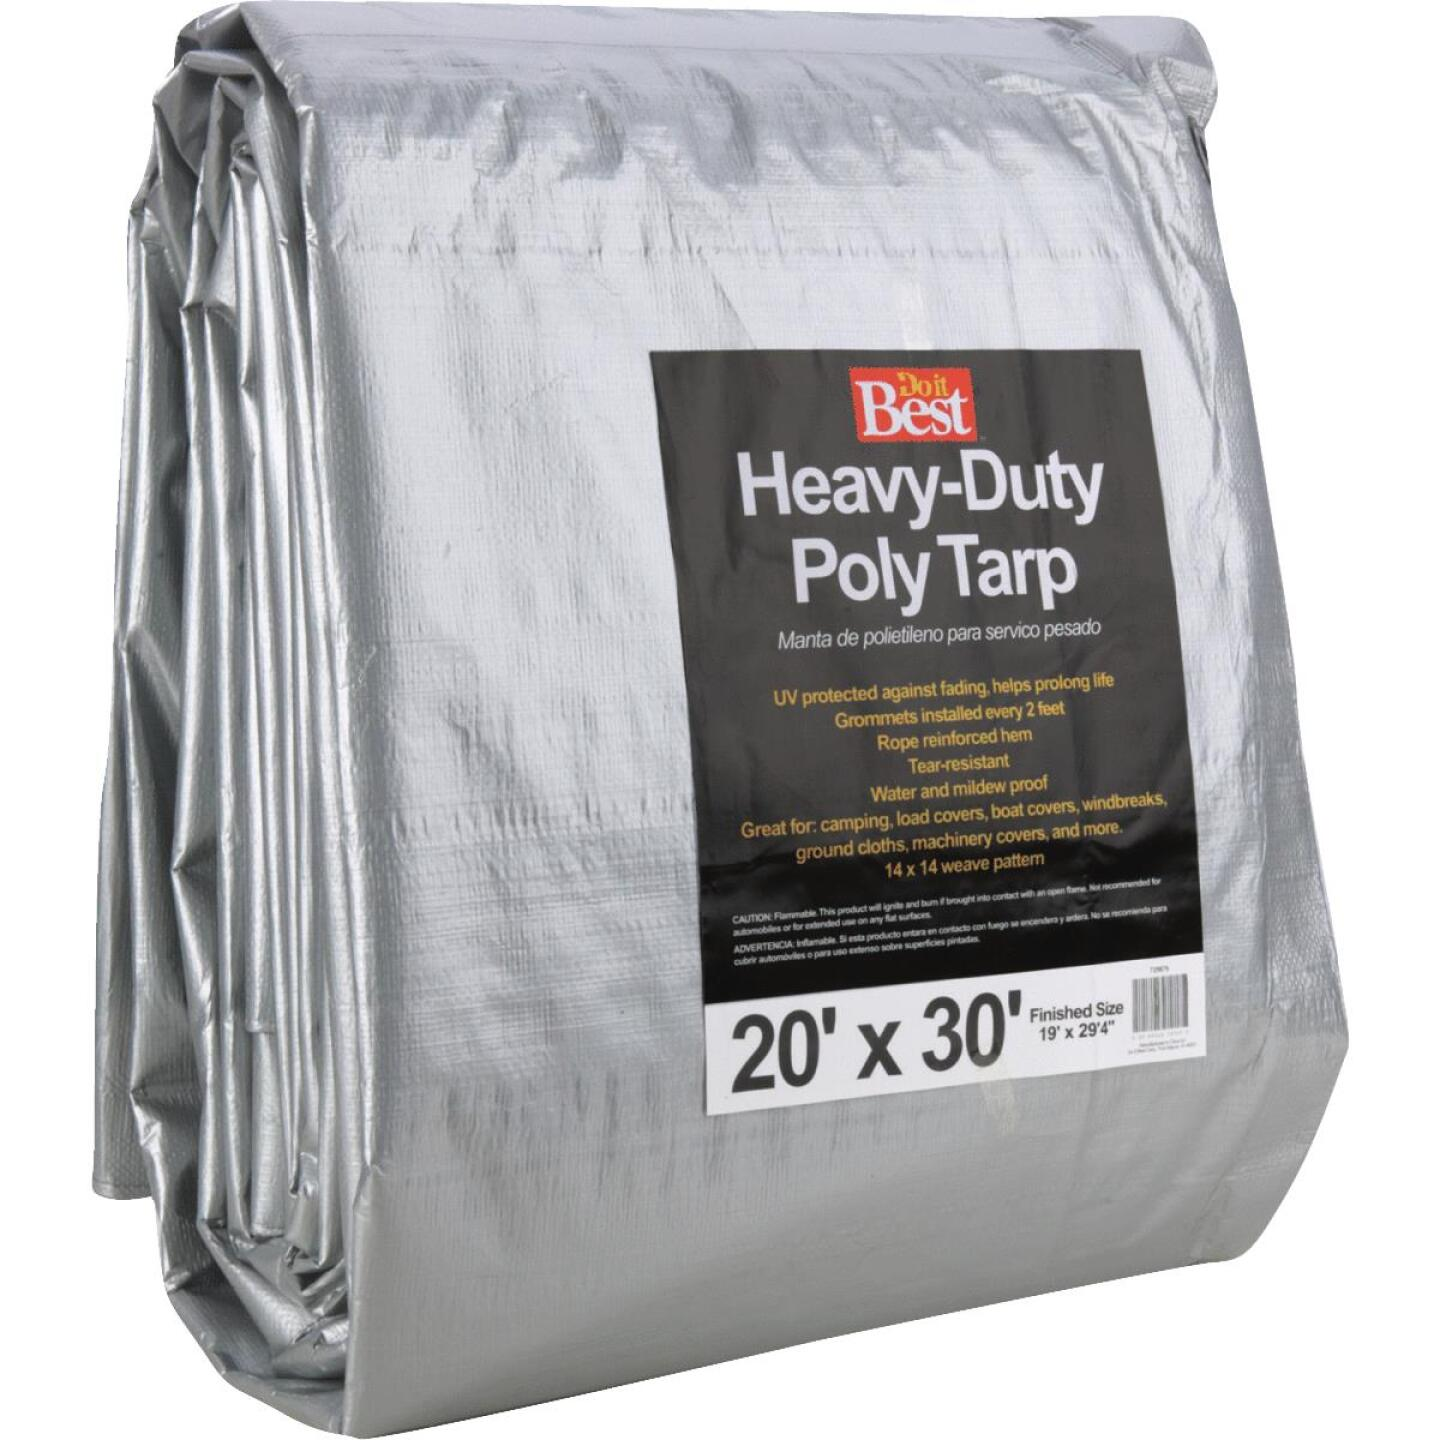 Do it Best Silver Woven 20 Ft. x 30 Ft. Heavy Duty Poly Tarp Image 2